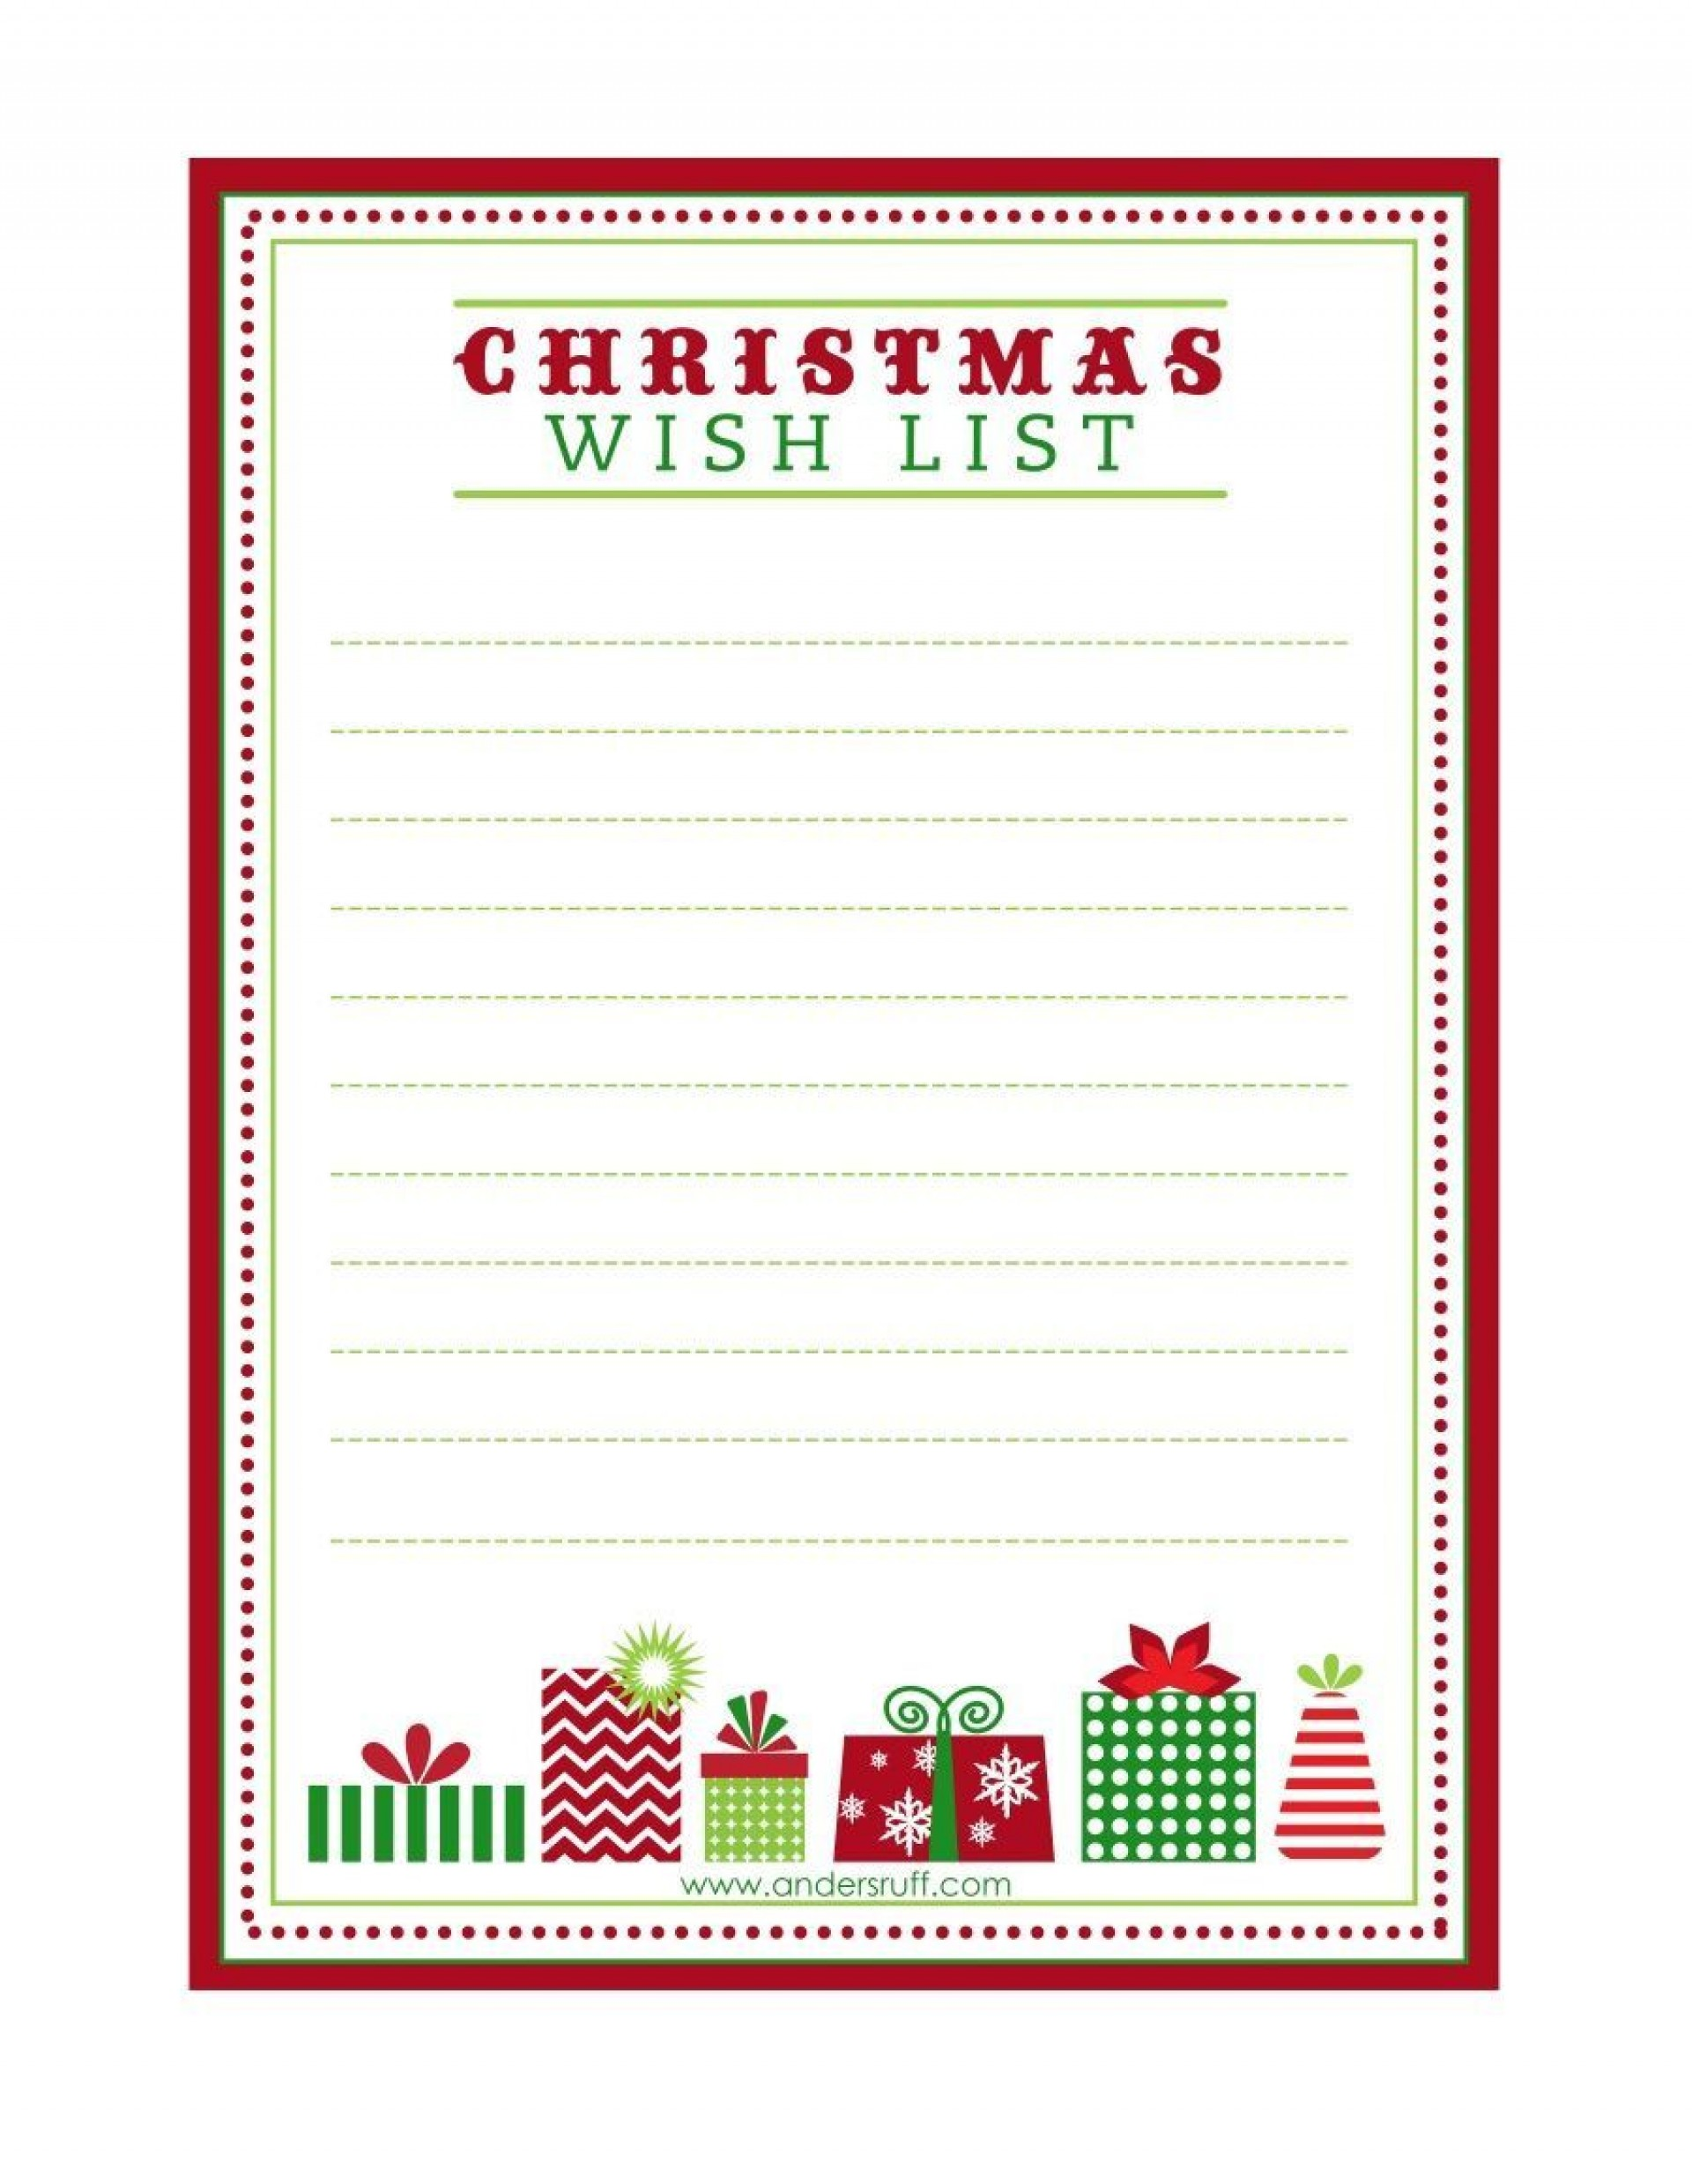 003 Exceptional Printable Wish List Template Highest Quality  Christma Free Pdf1920